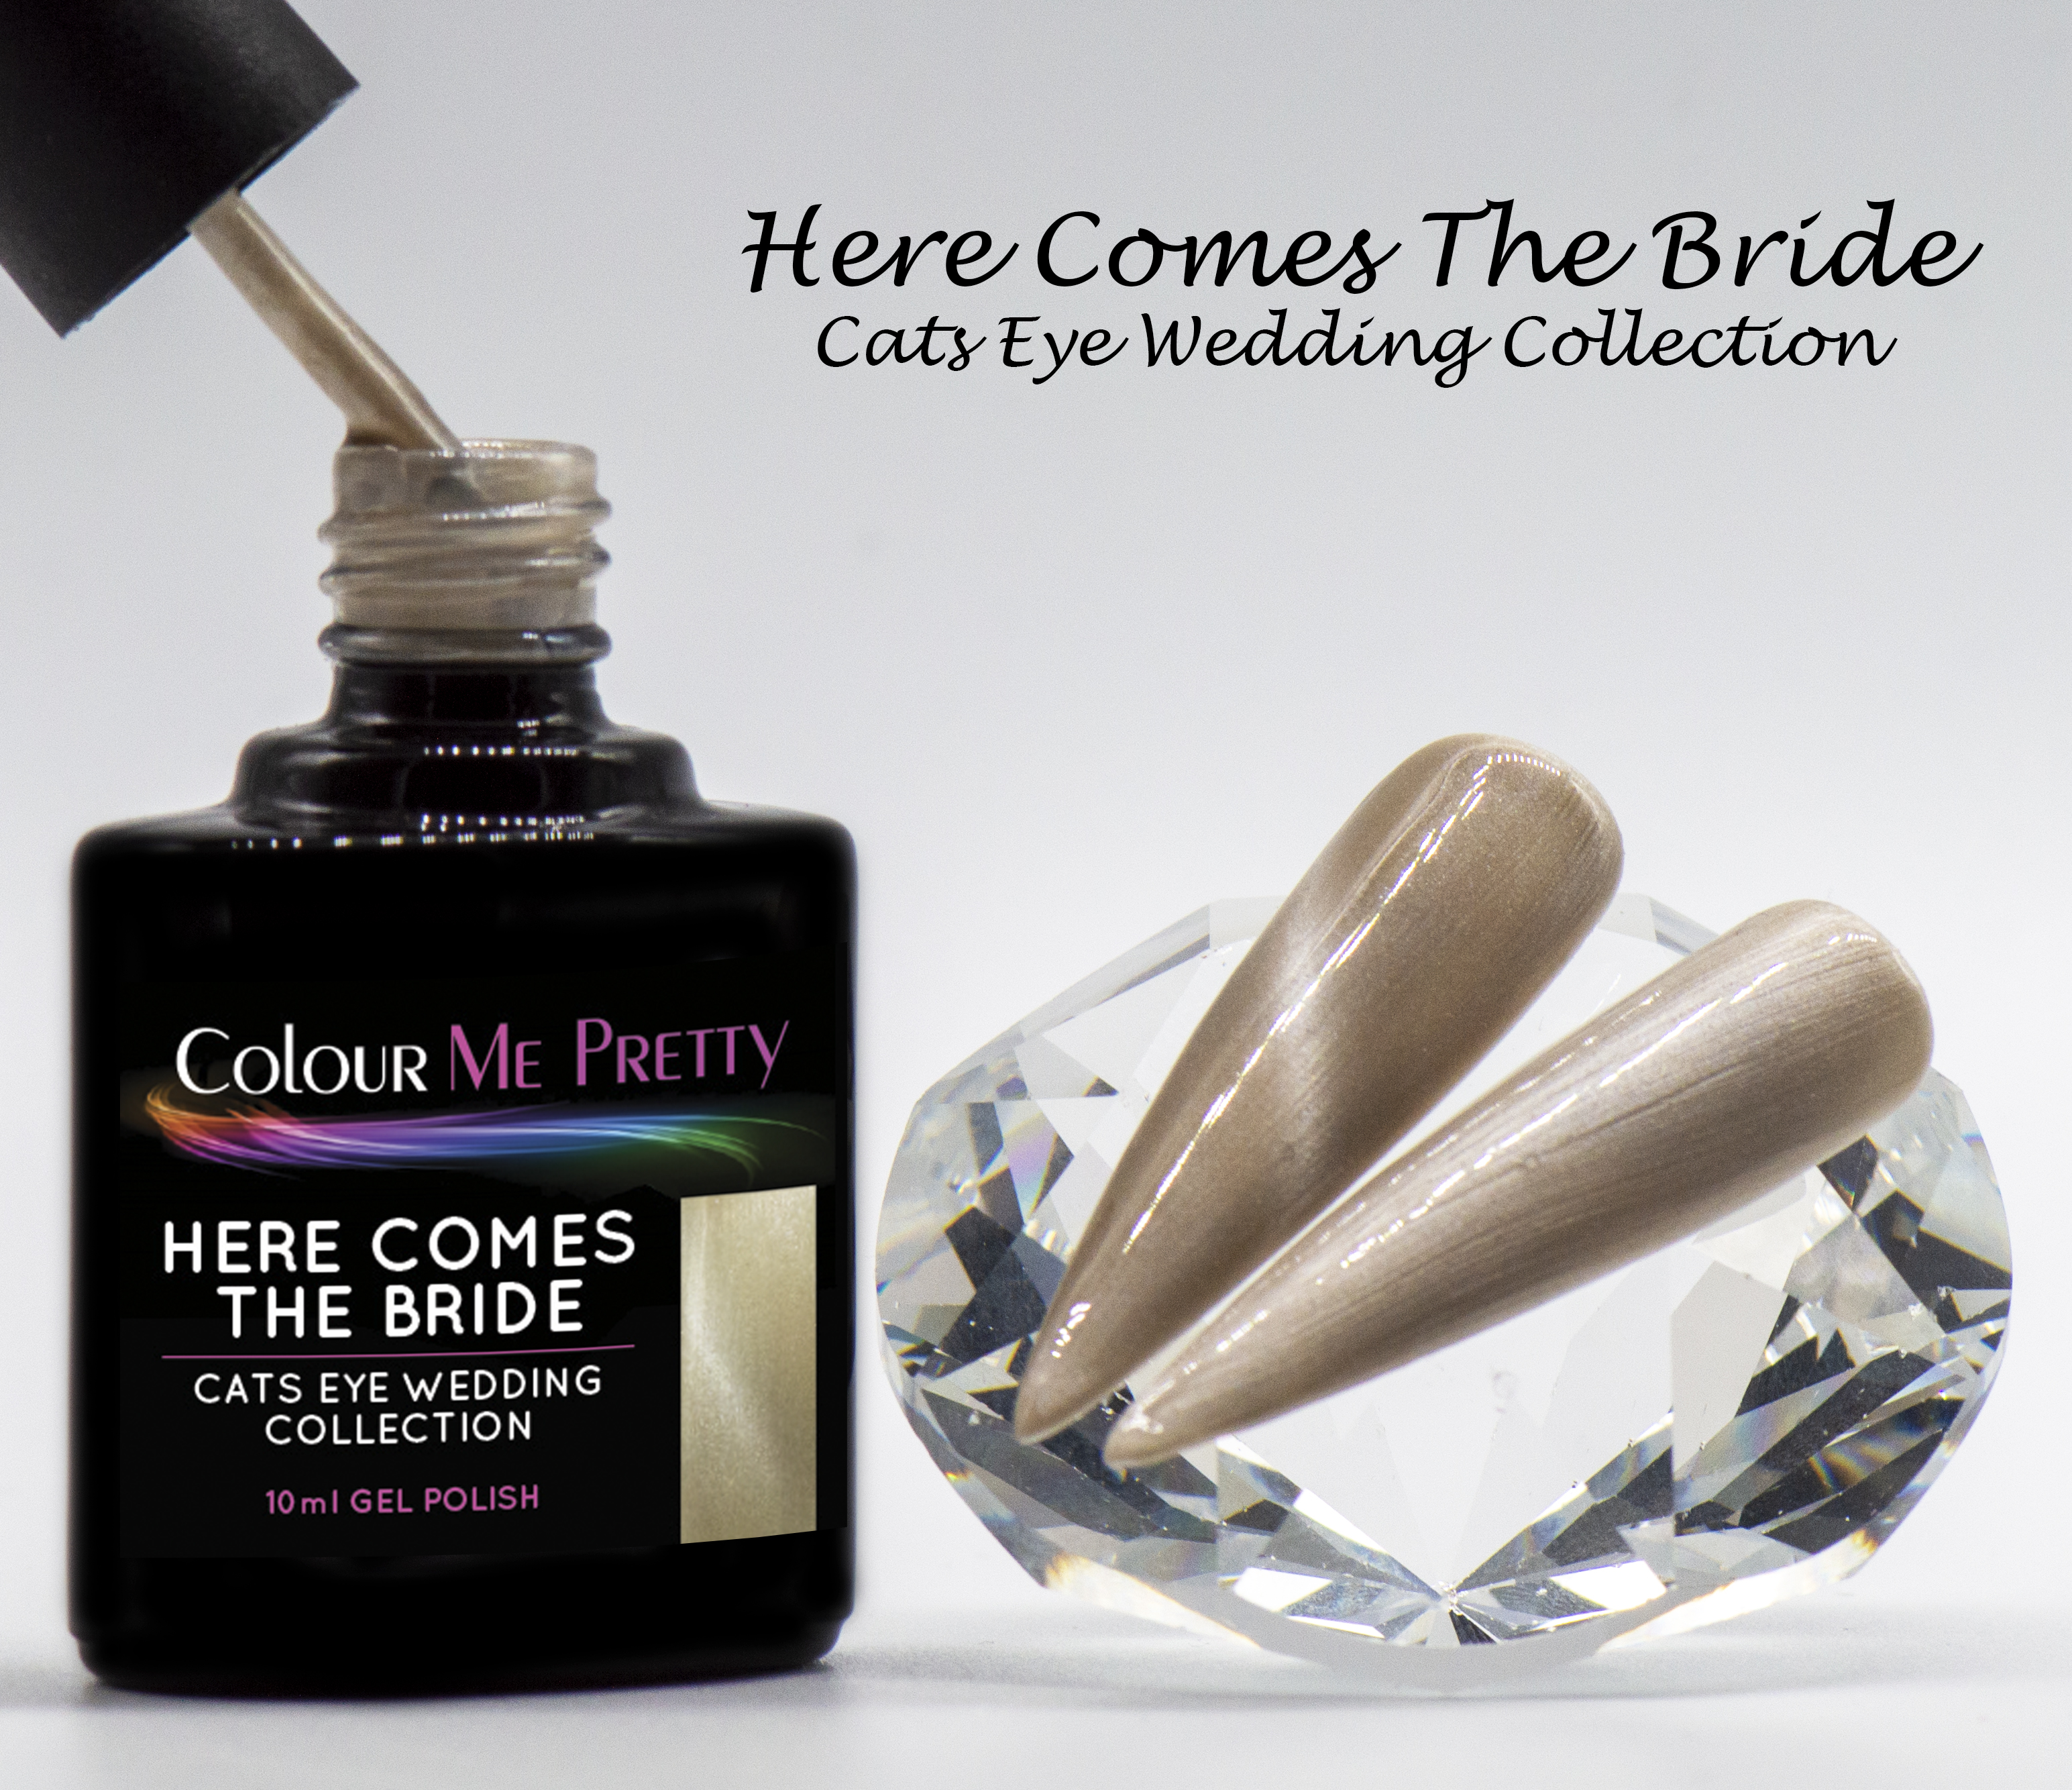 Cats Eye Wedding Here Comes The Bride